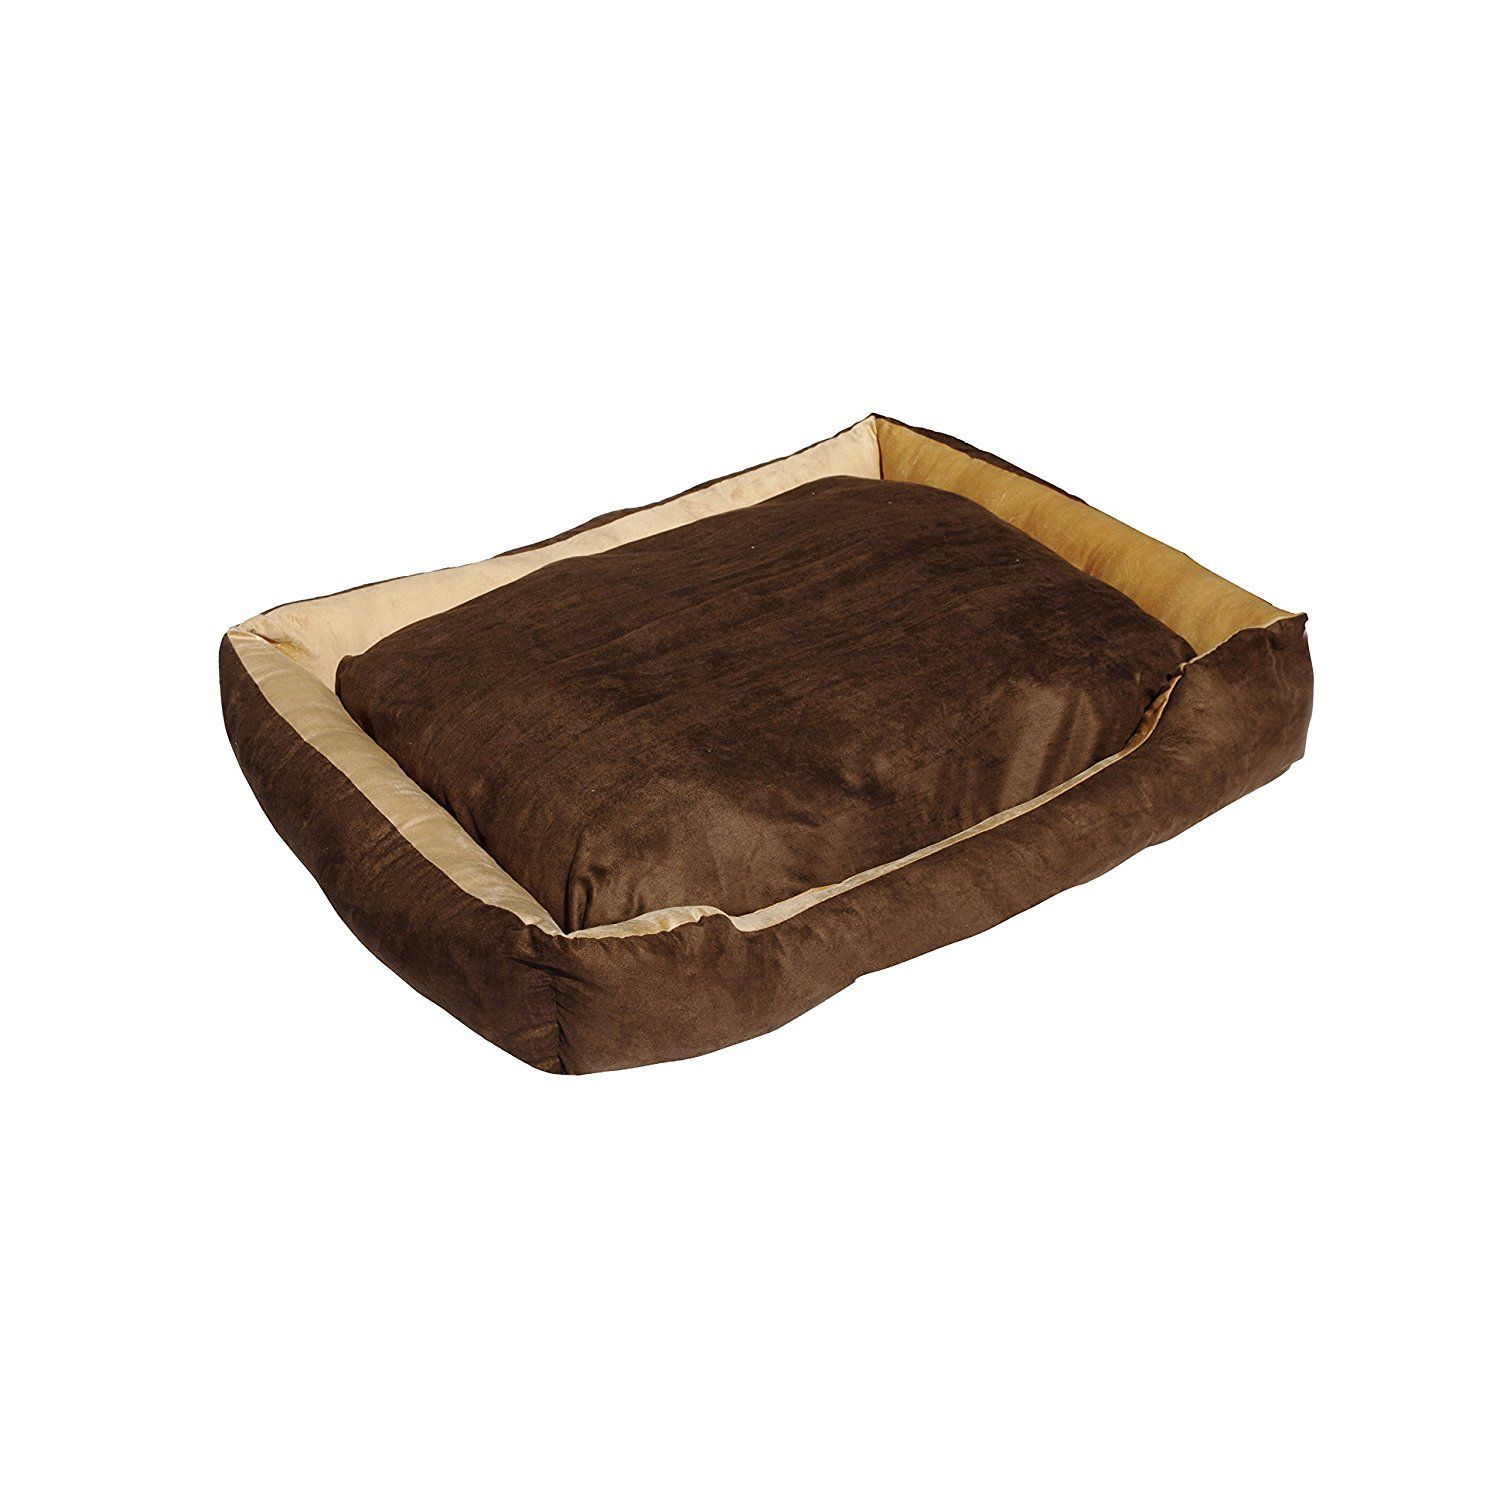 ALEKO LBD1501L Soft Plush Pet Cushion Crate Bed for Dogs